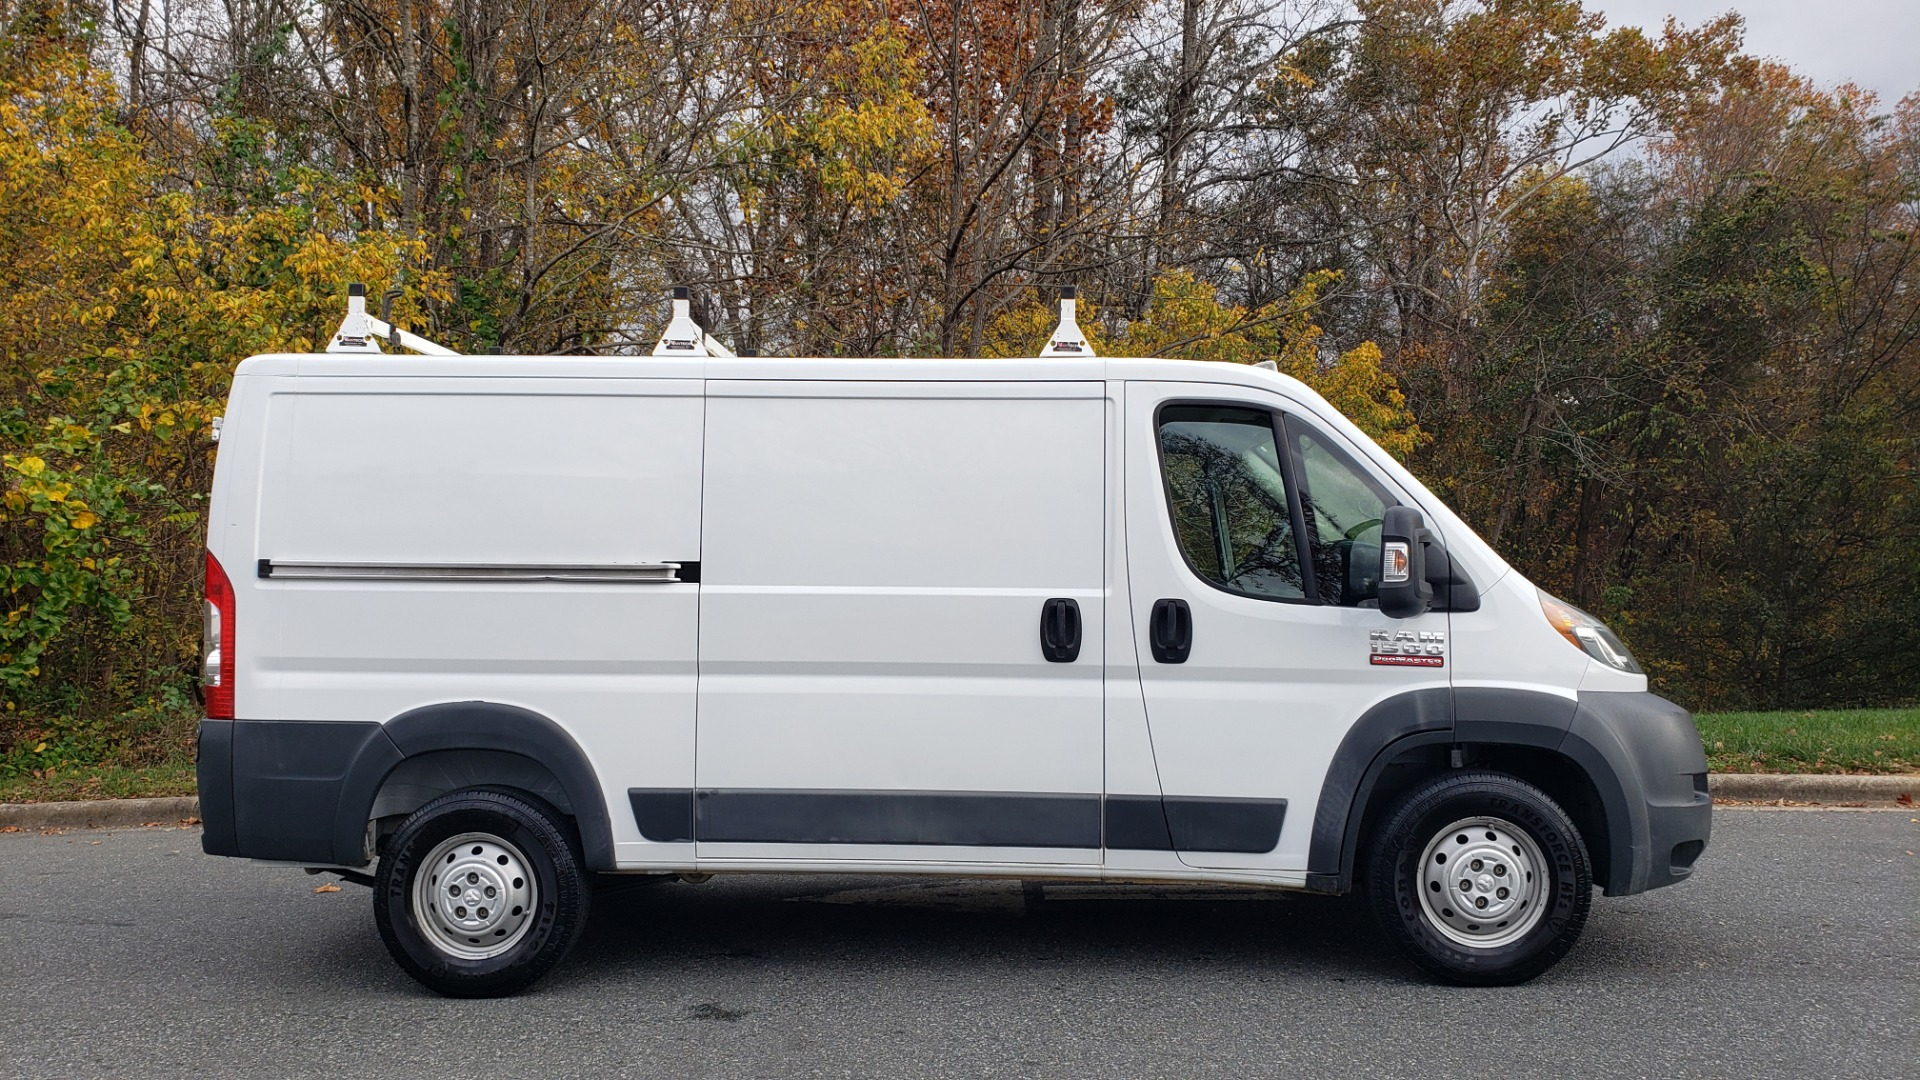 Used 2015 Ram PROMASTER CARGO VAN 136-INCH WB / LOW ROOF / LADDER RACK / INSIDE RACKS for sale $15,995 at Formula Imports in Charlotte NC 28227 5